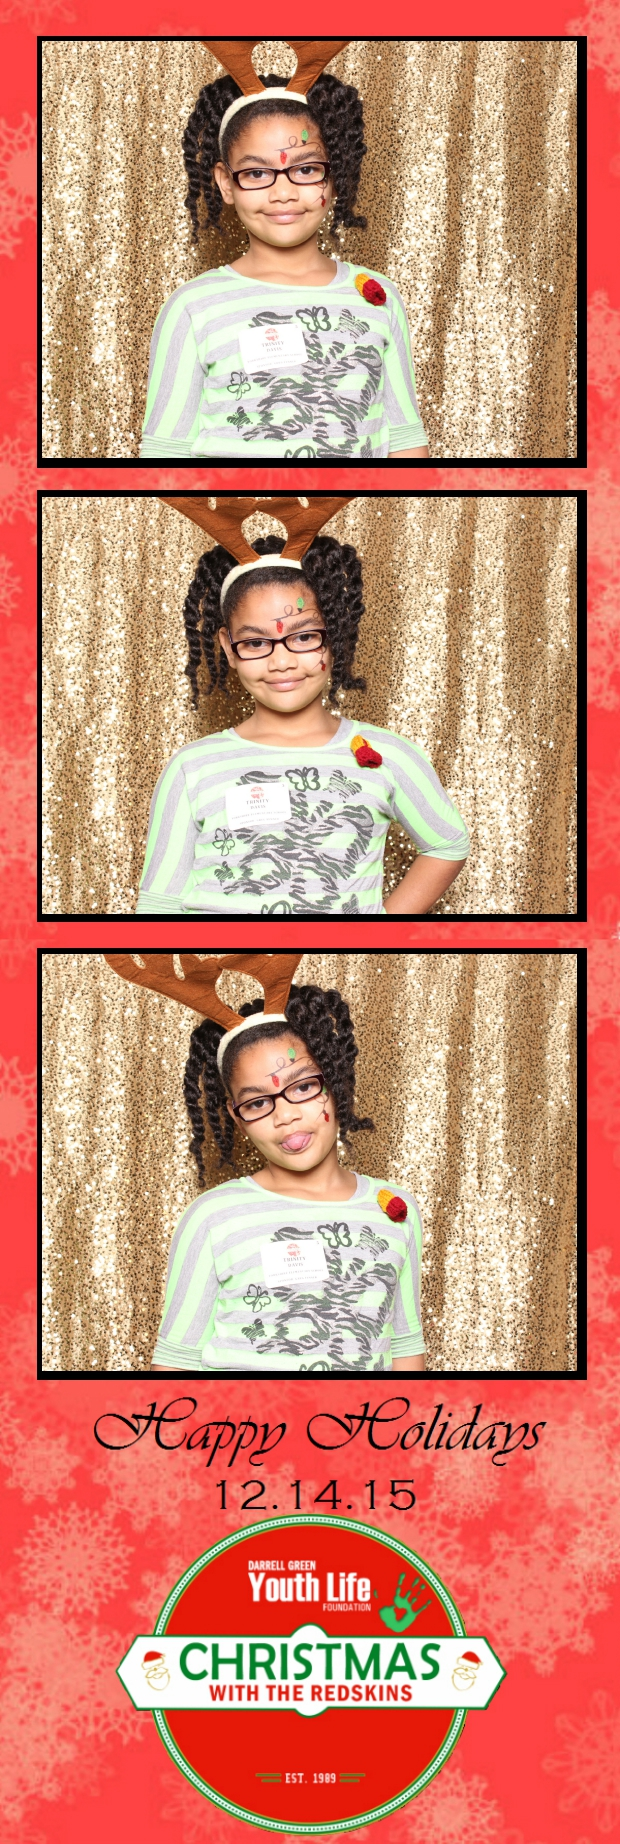 Guest House Events Photo Booth DGYLF Strips (47).jpg